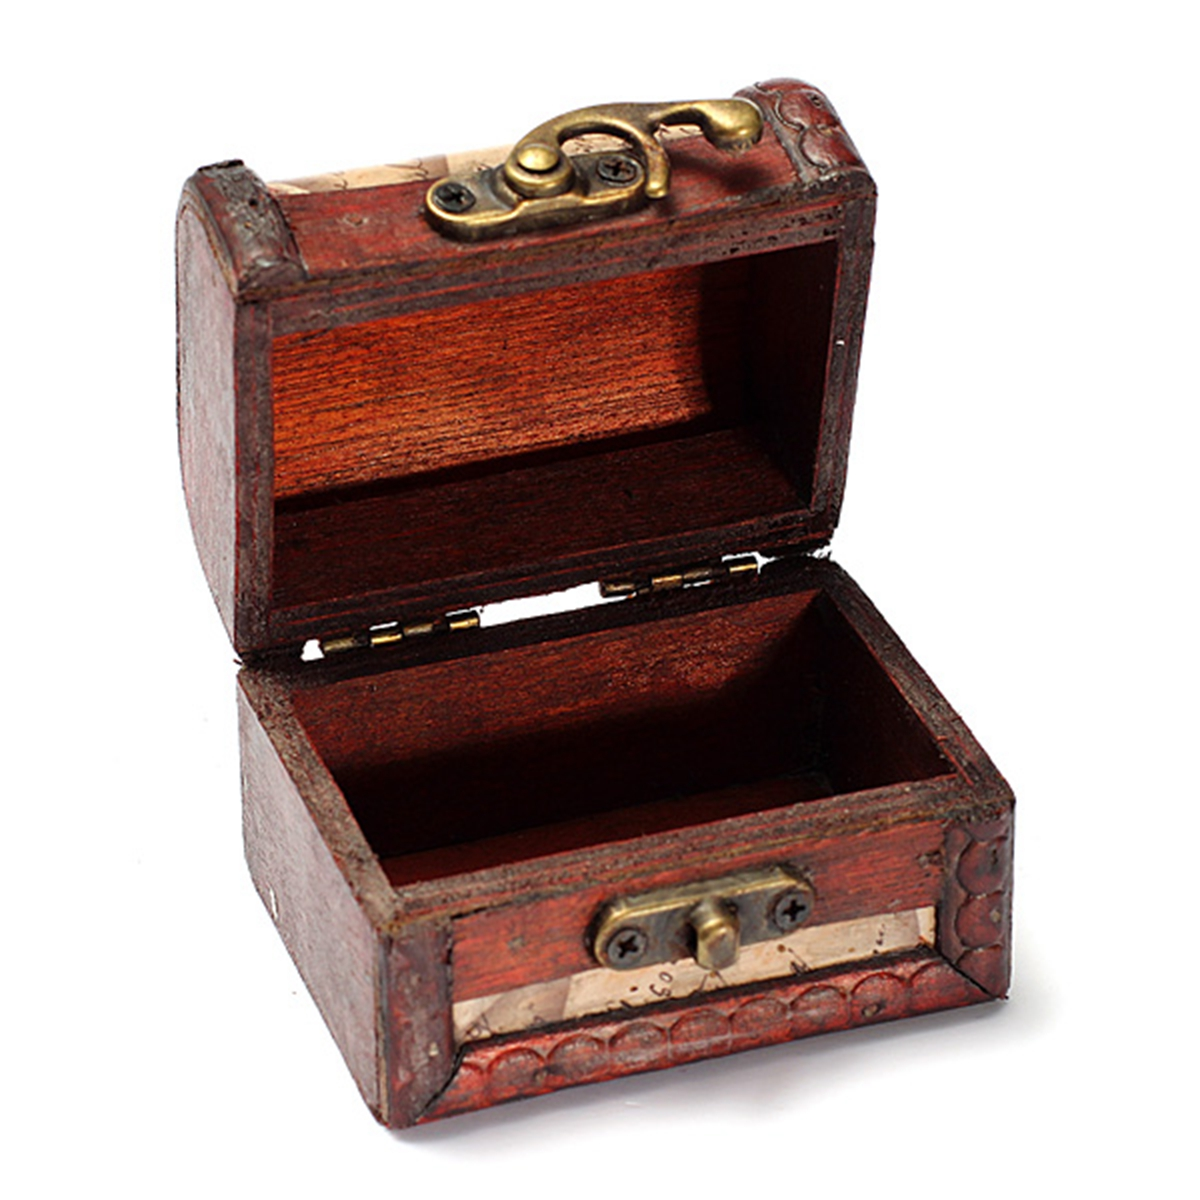 Vintage stamp small metal lock jewelry treasure chest case